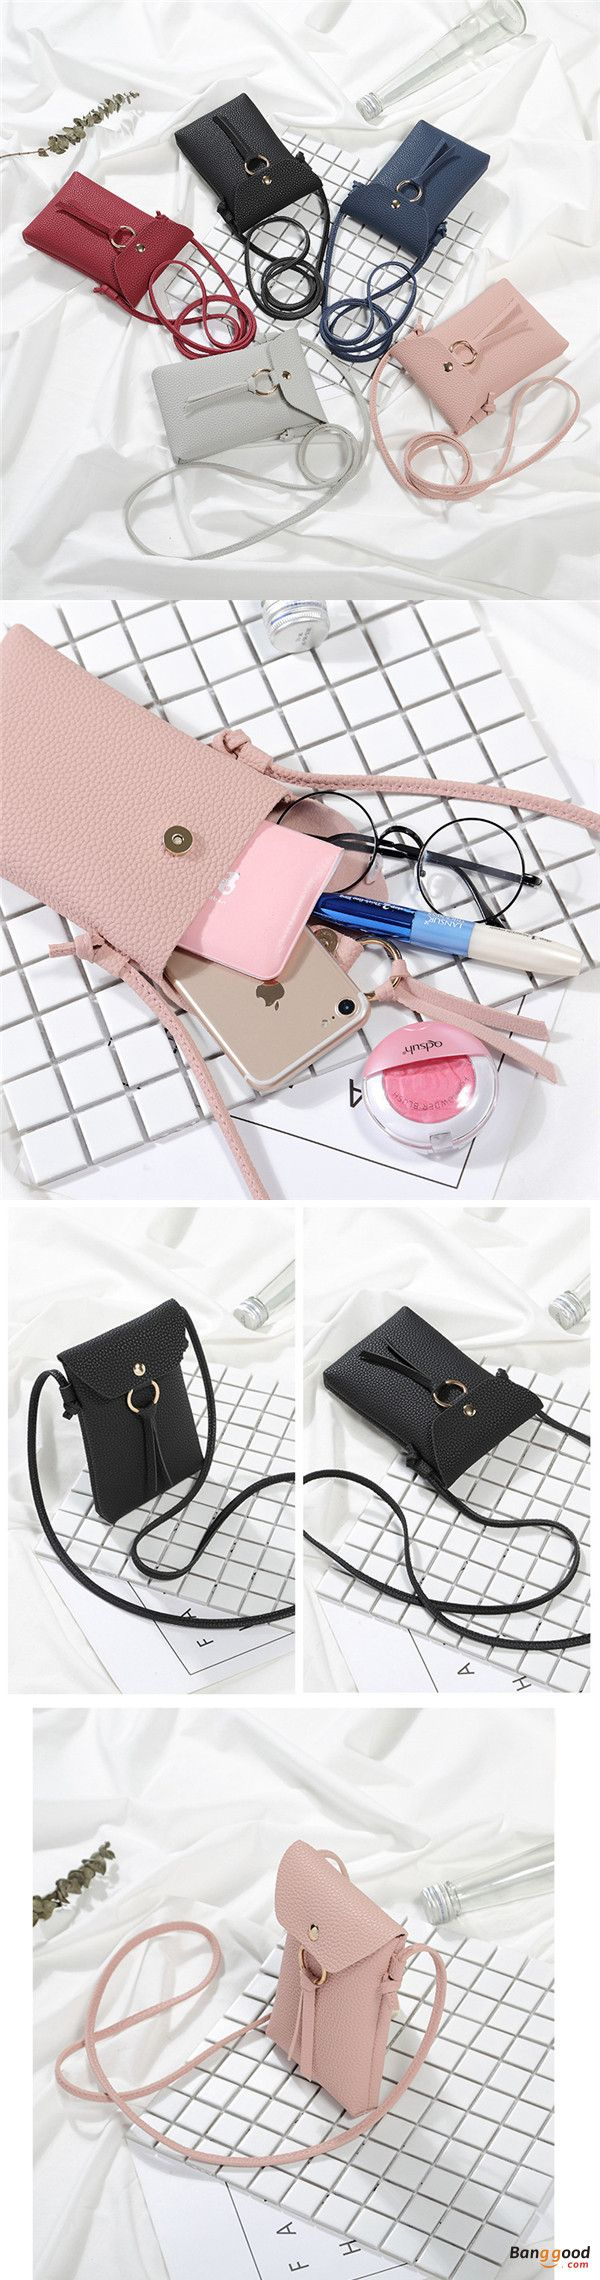 US$7.99 + Free shipping. Women Wallet, Long Wallet, Coin Holder, Card Holder, Phone Bag. Color: Black, White, Pink, Red, Blue. Magnetic buckle. Large capacity.